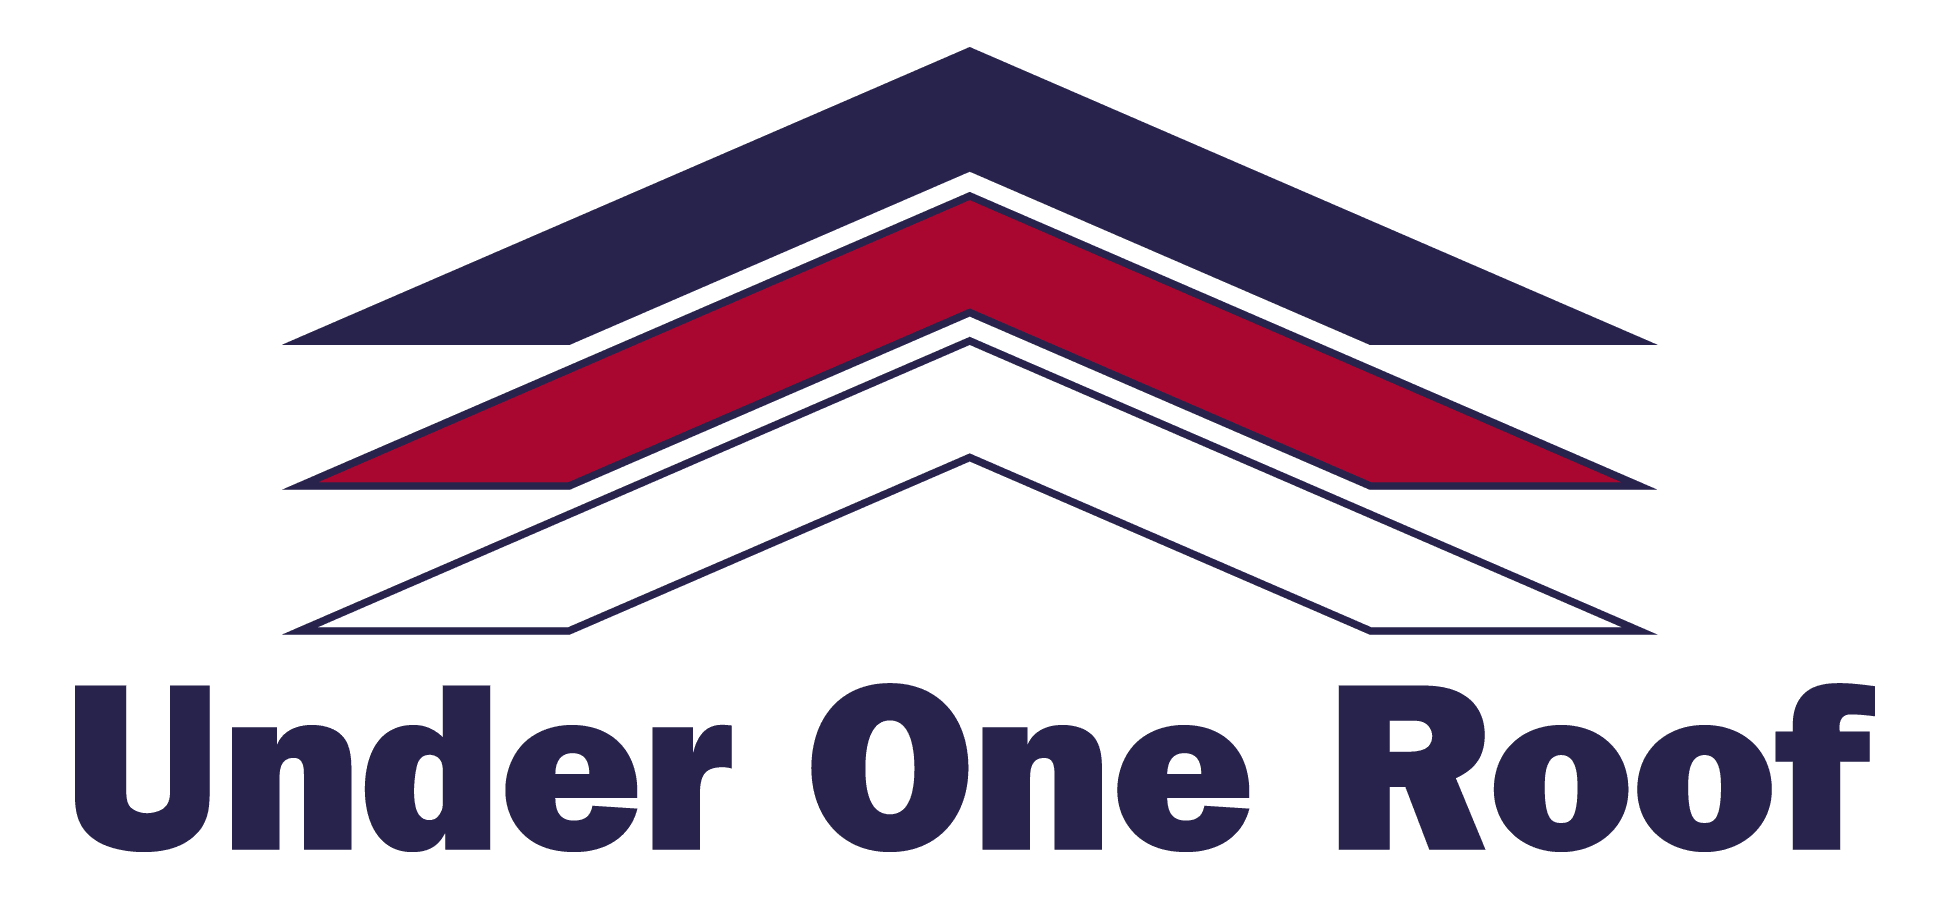 Under One Roof LLC is the One-Stop Shop for Home Repair with Integrity